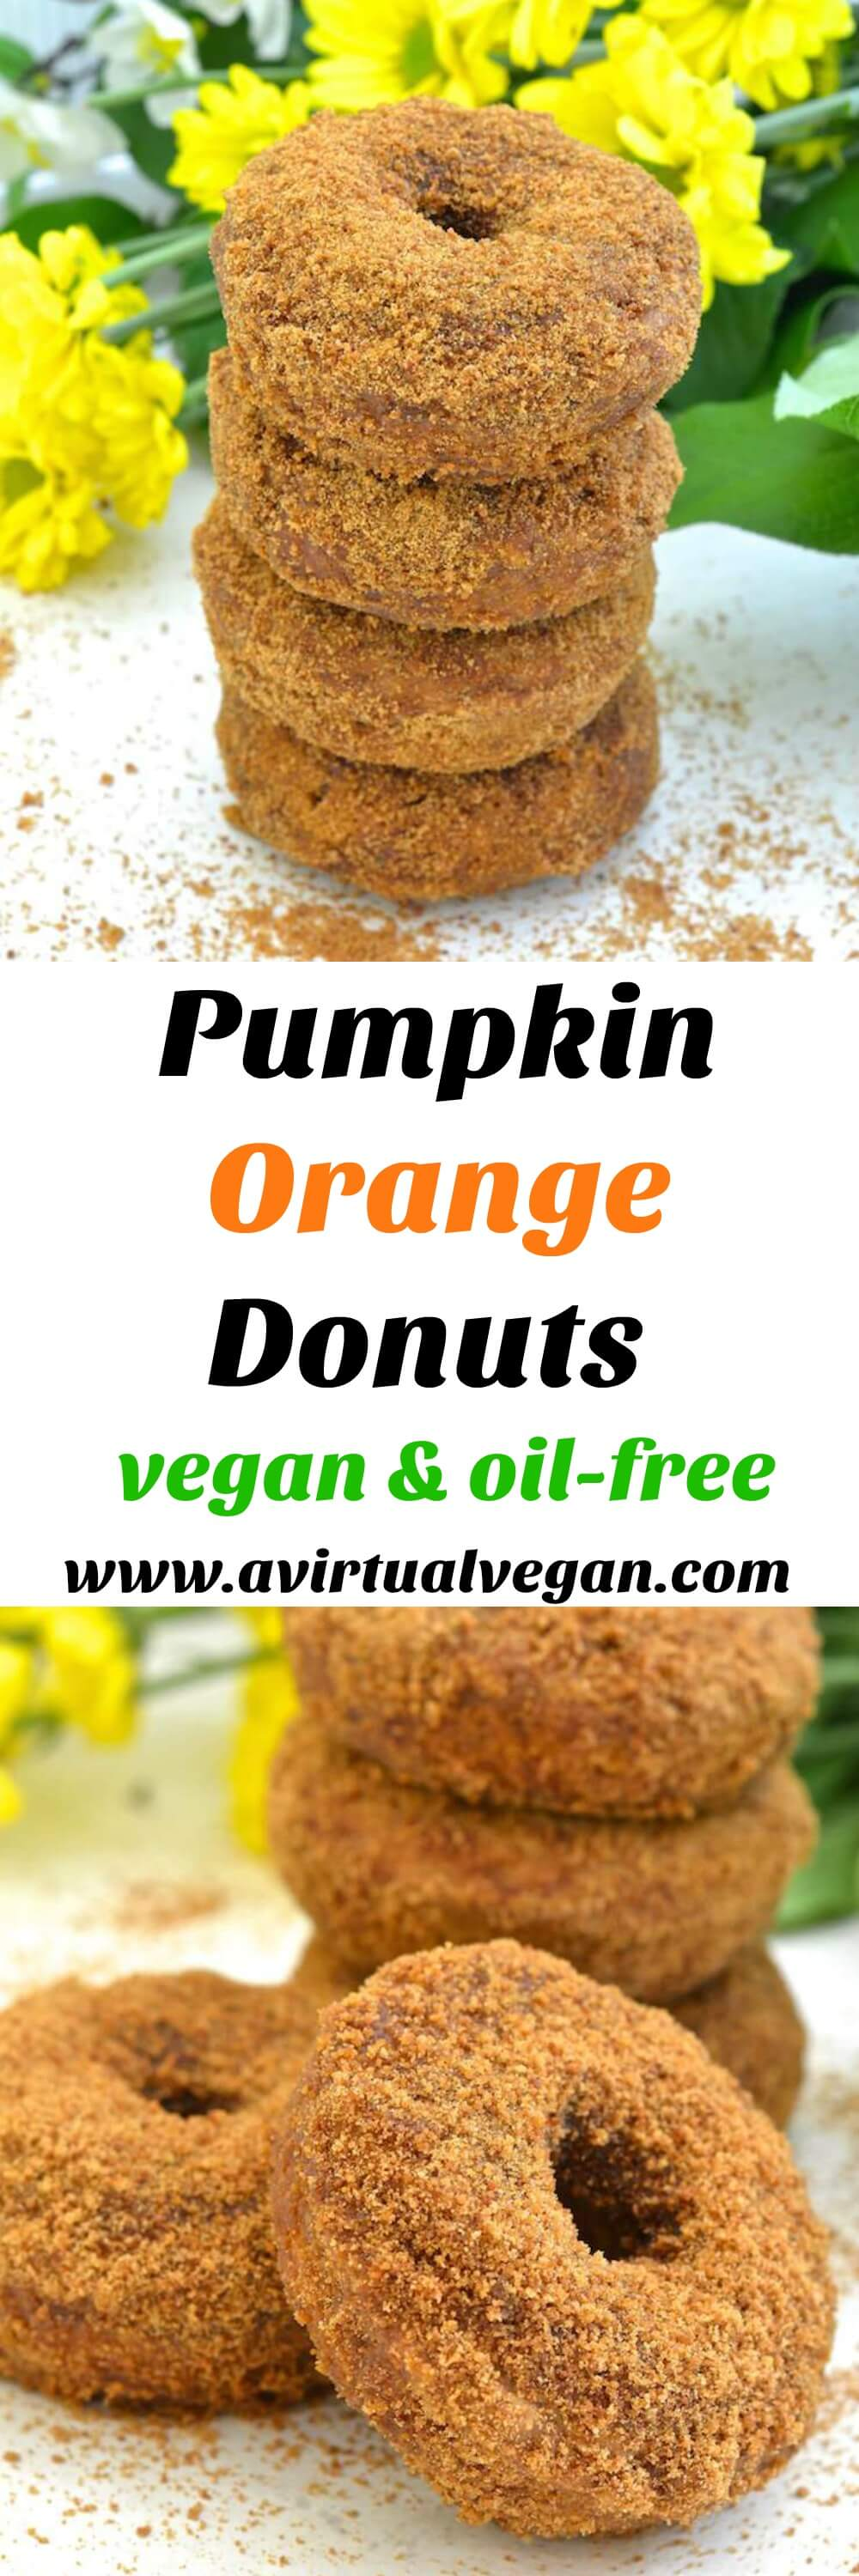 Moist, soft & fluffy, oil-free Pumpkin Orange Donuts. Baked to perfection then rolled in sugar. So easy to make & no mixer required! All you need is a spoon & a bowl. No donut pan? Don't worry, I've got you covered, but just so's you know....everything tastes better in donut shape! ;O)